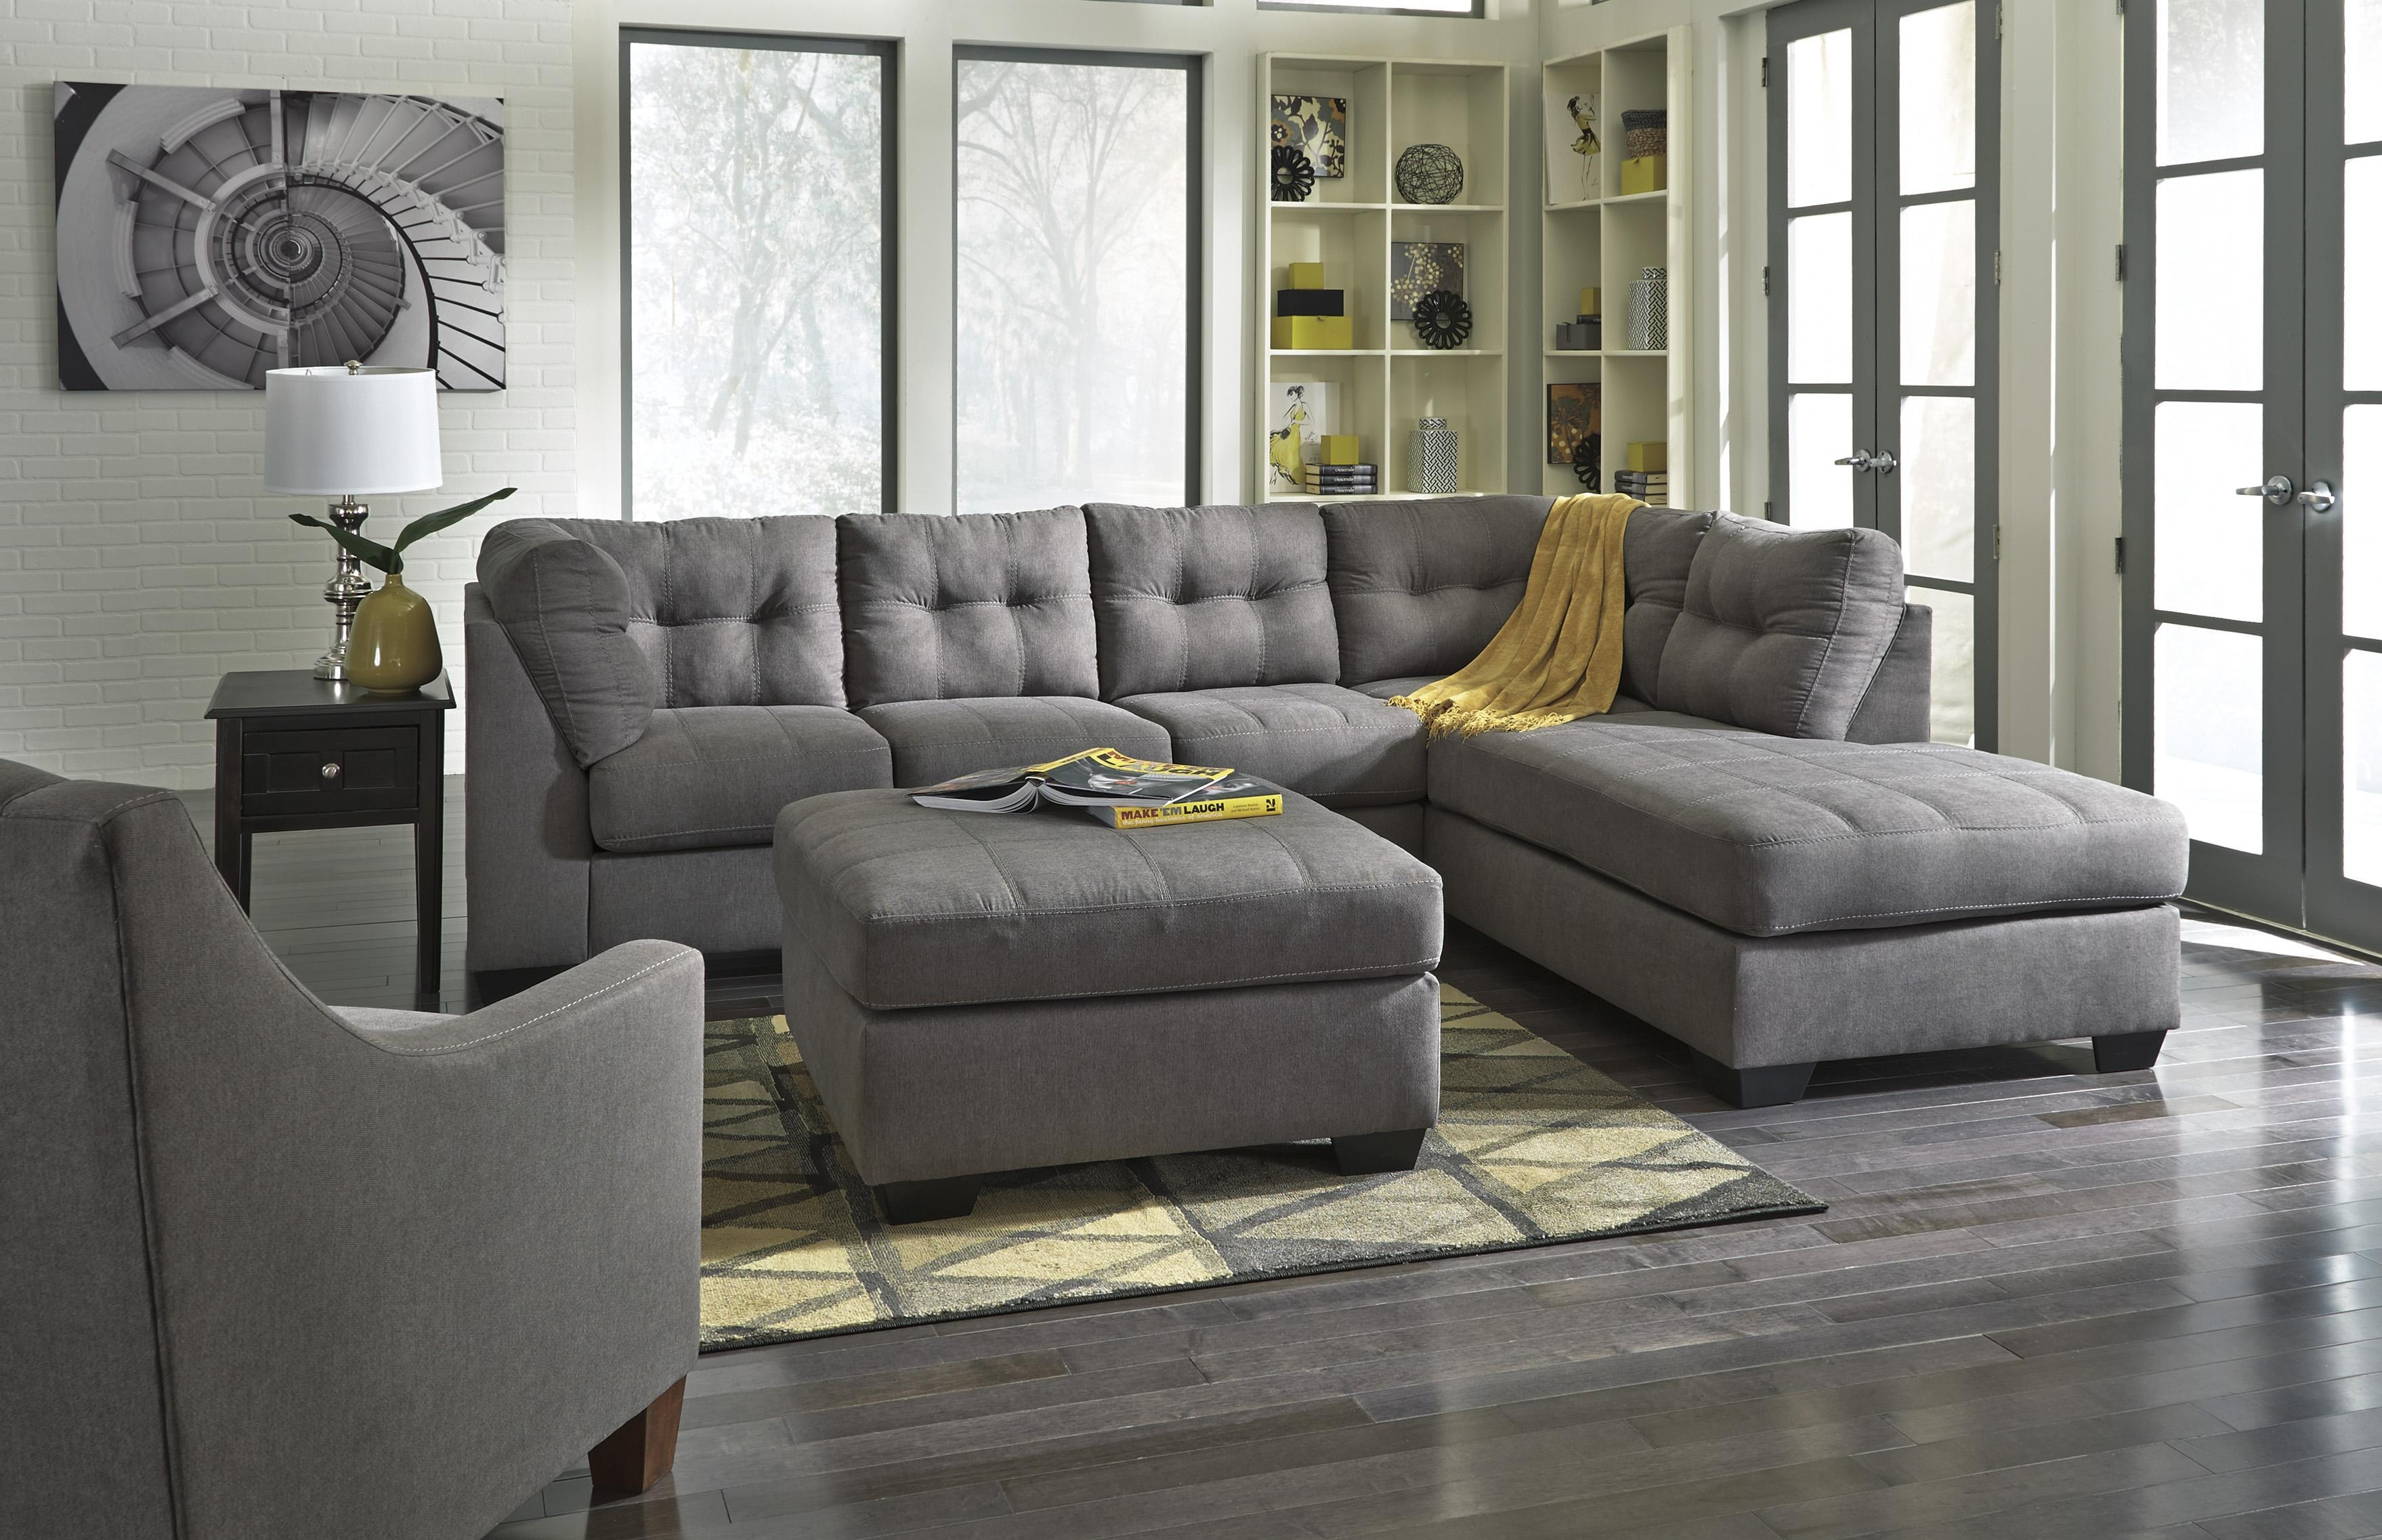 Benchcraft Maier – Charcoal 2 Piece Sectional W/ Sleeper Sofa With Ashley Sectional Sleeper (Image 2 of 15)